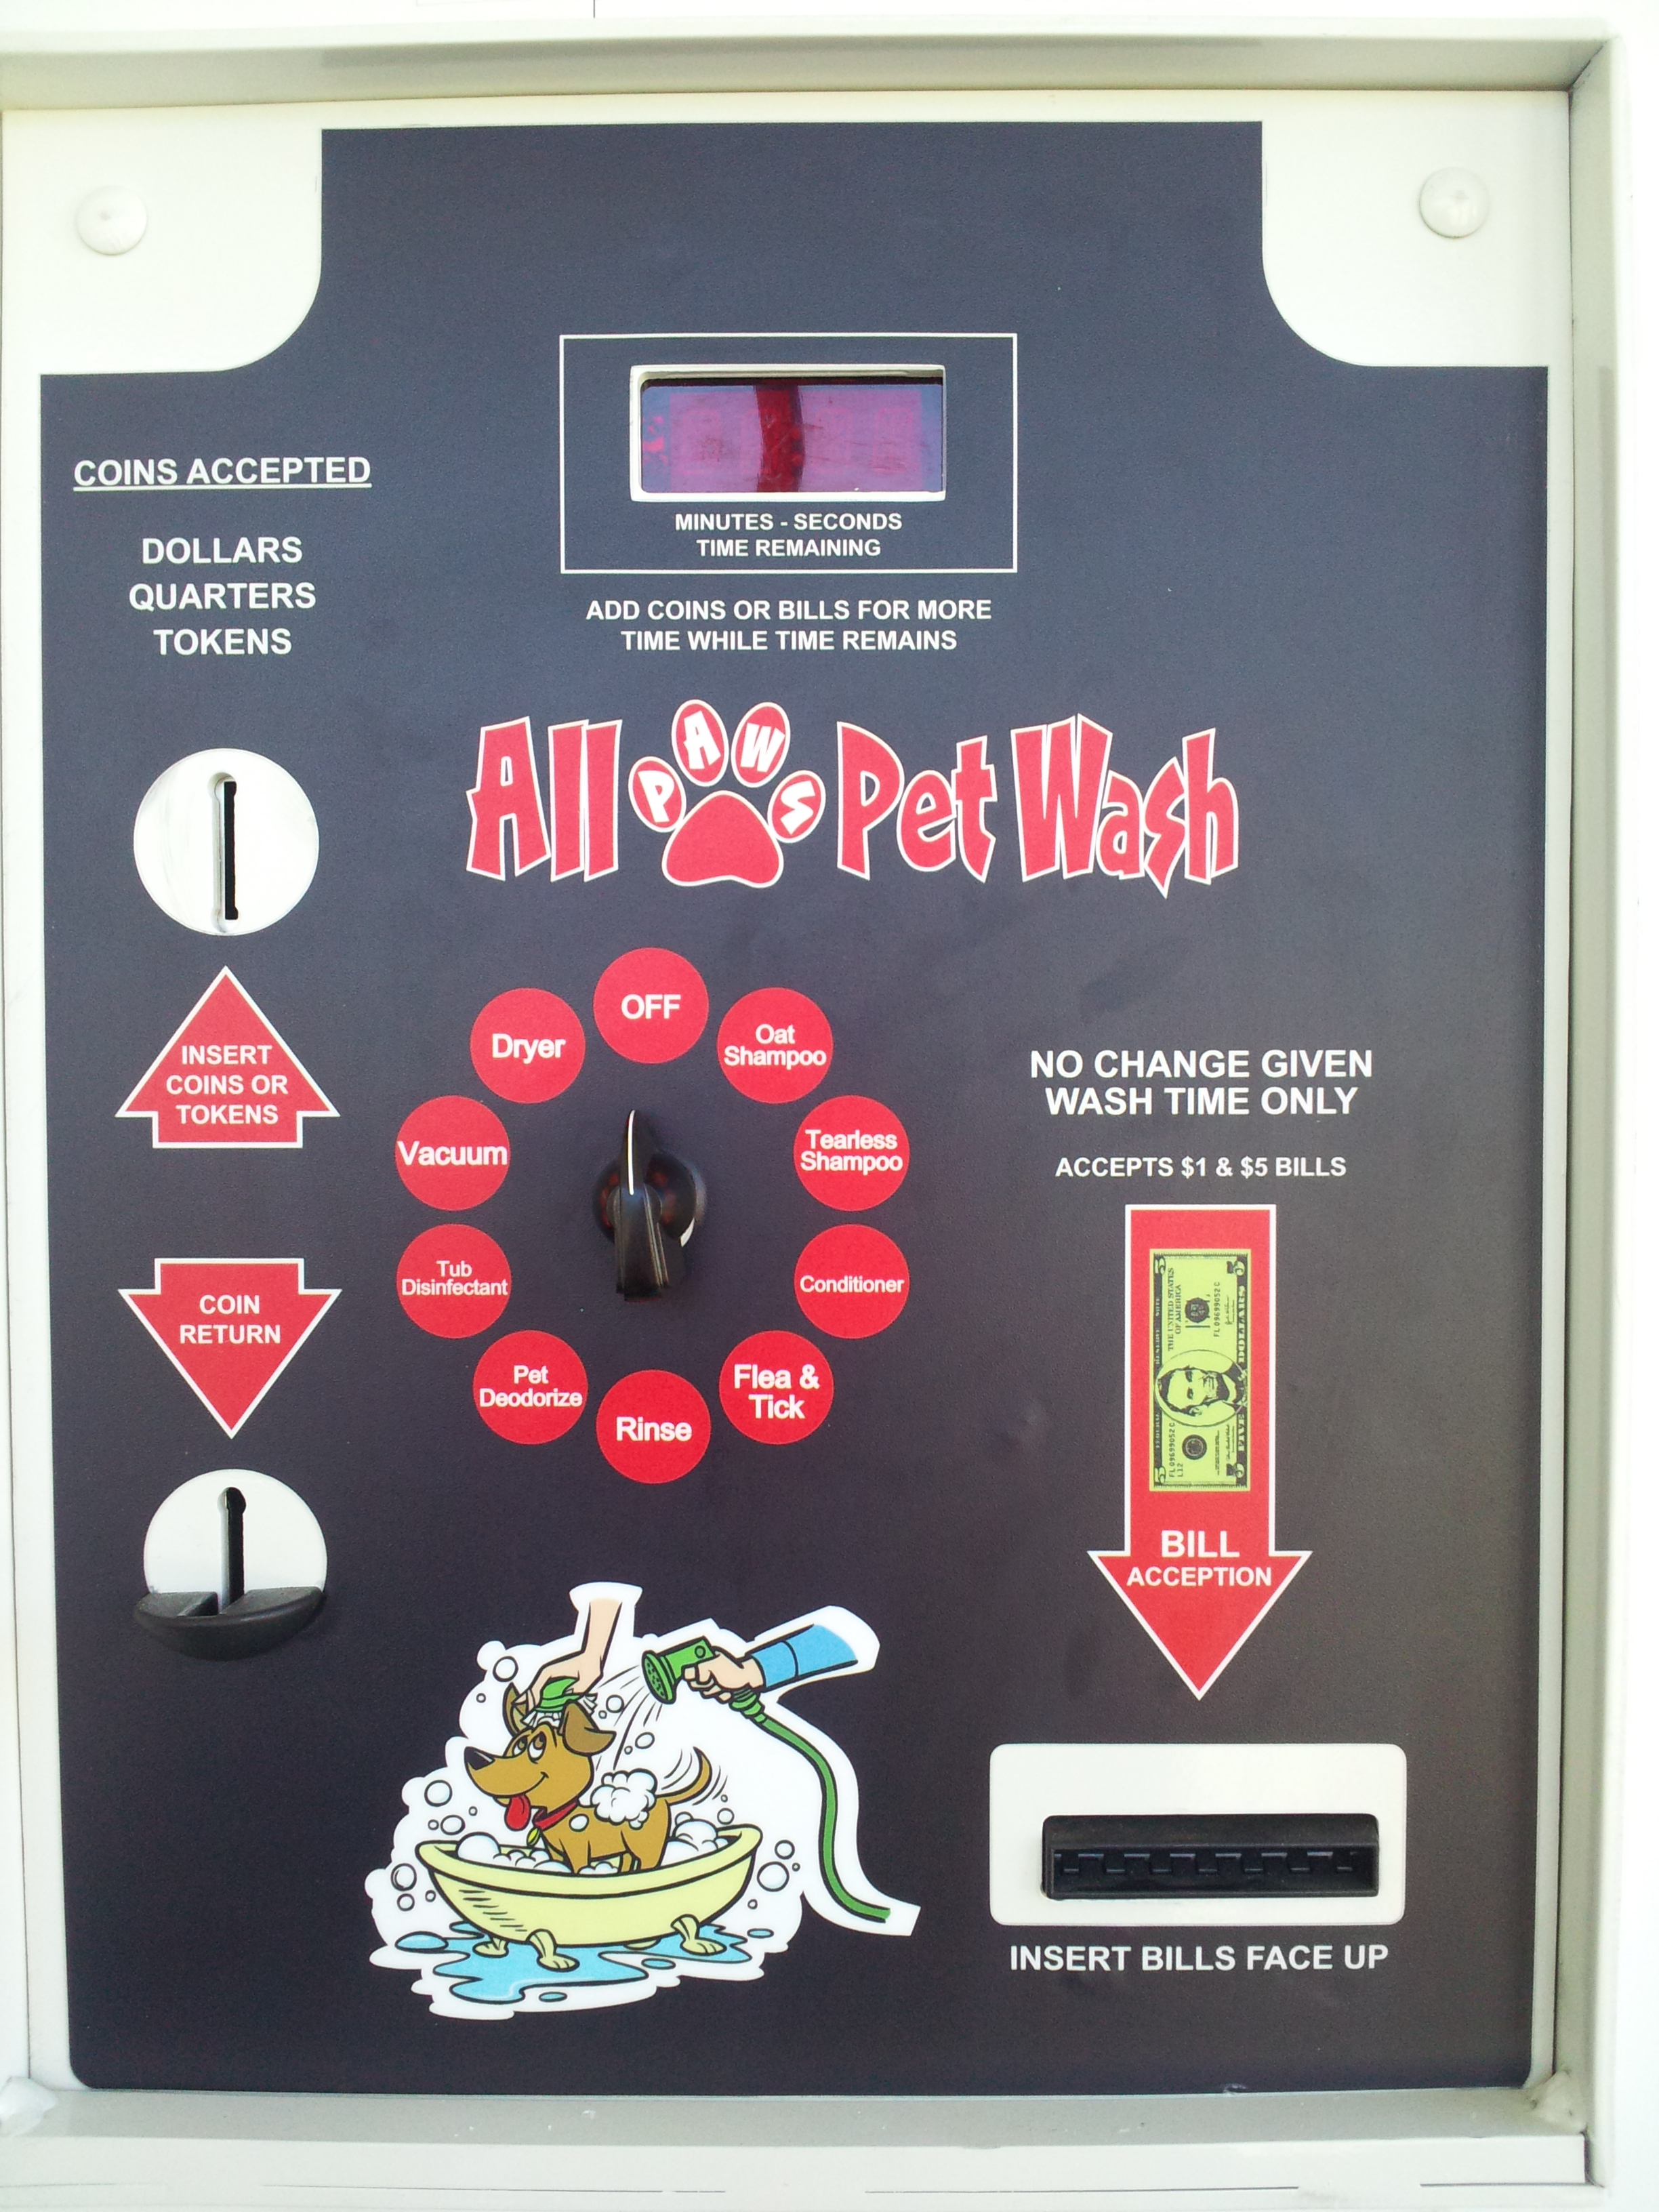 Car wash pet wash dog bath stations pet wash installations all coin operated dog wash payment options 2011 08 16 095838 self solutioingenieria Image collections